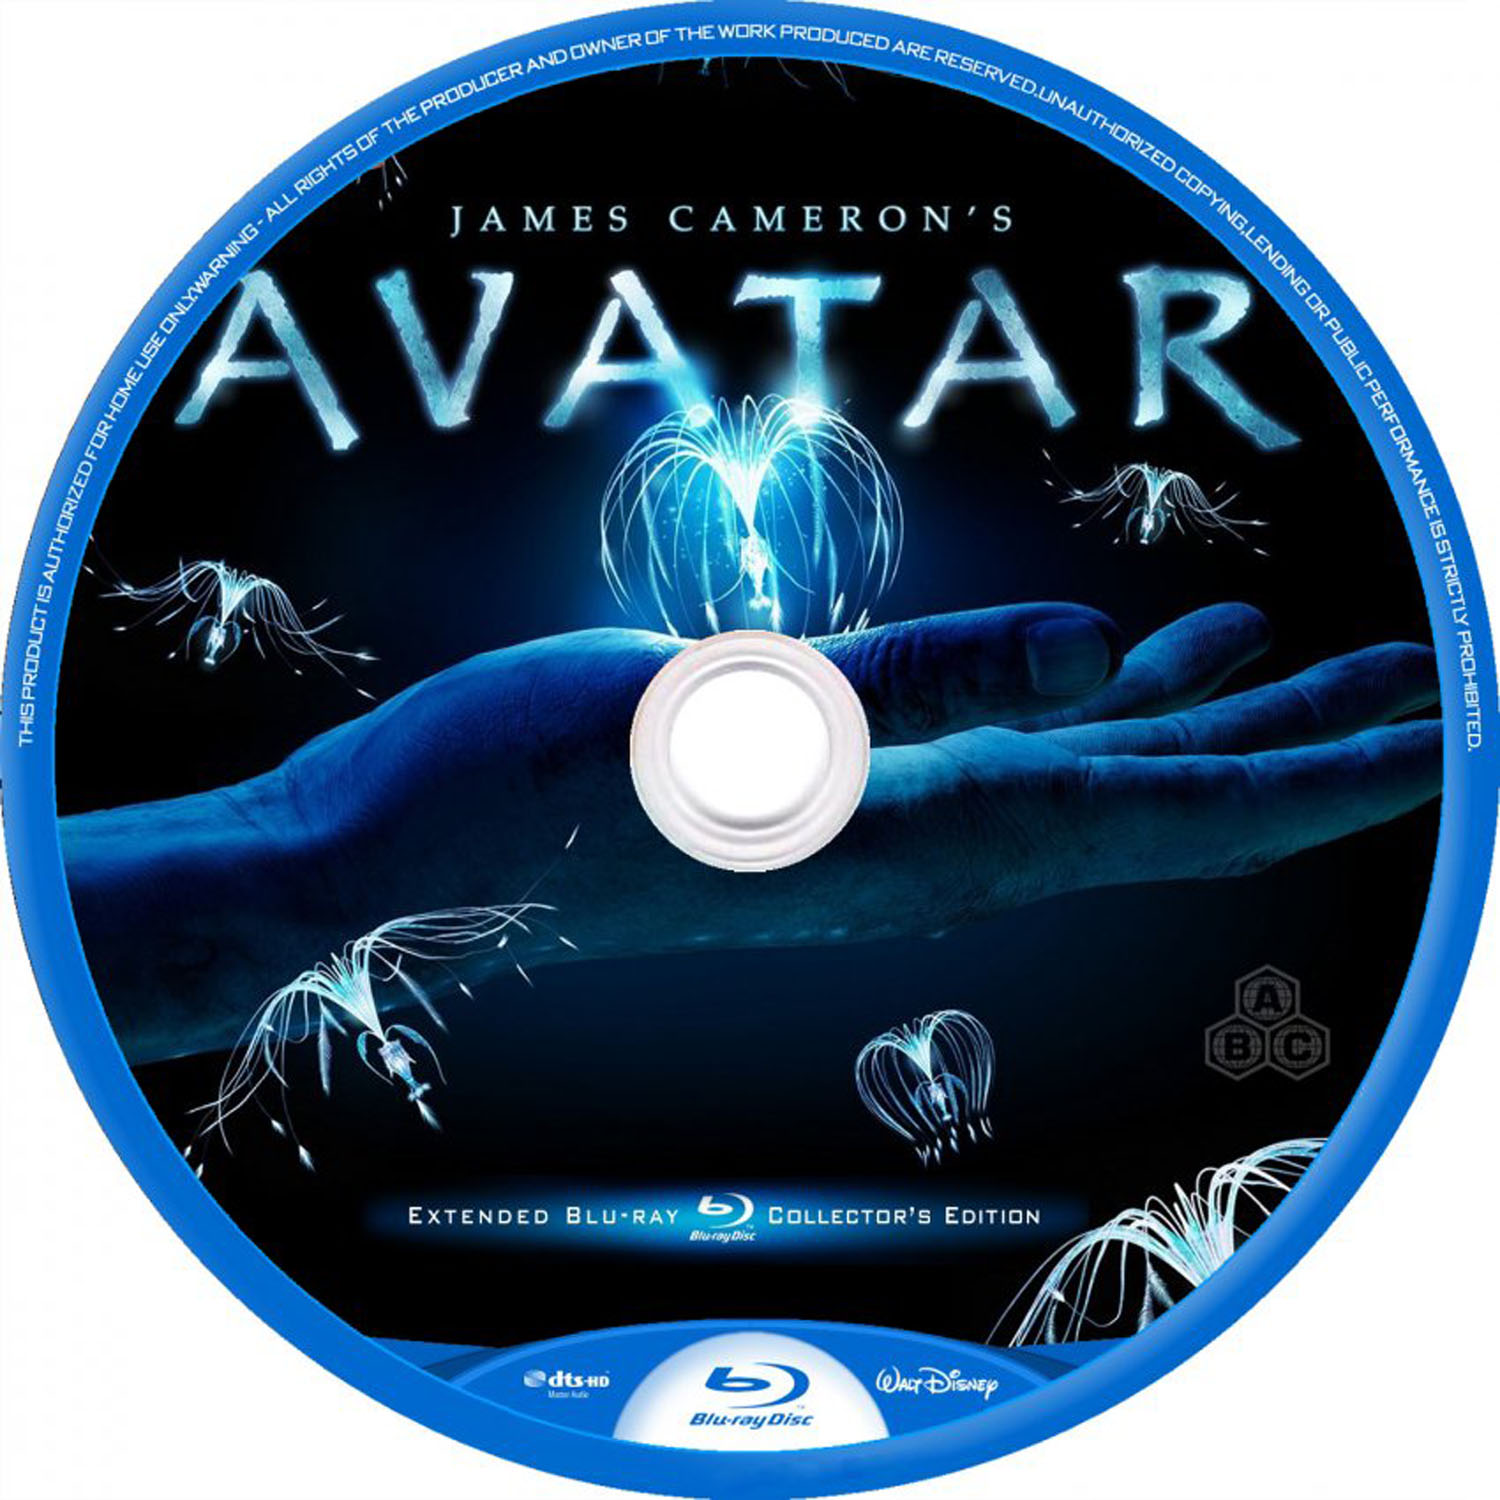 Avatar Movie Dvd Label Art